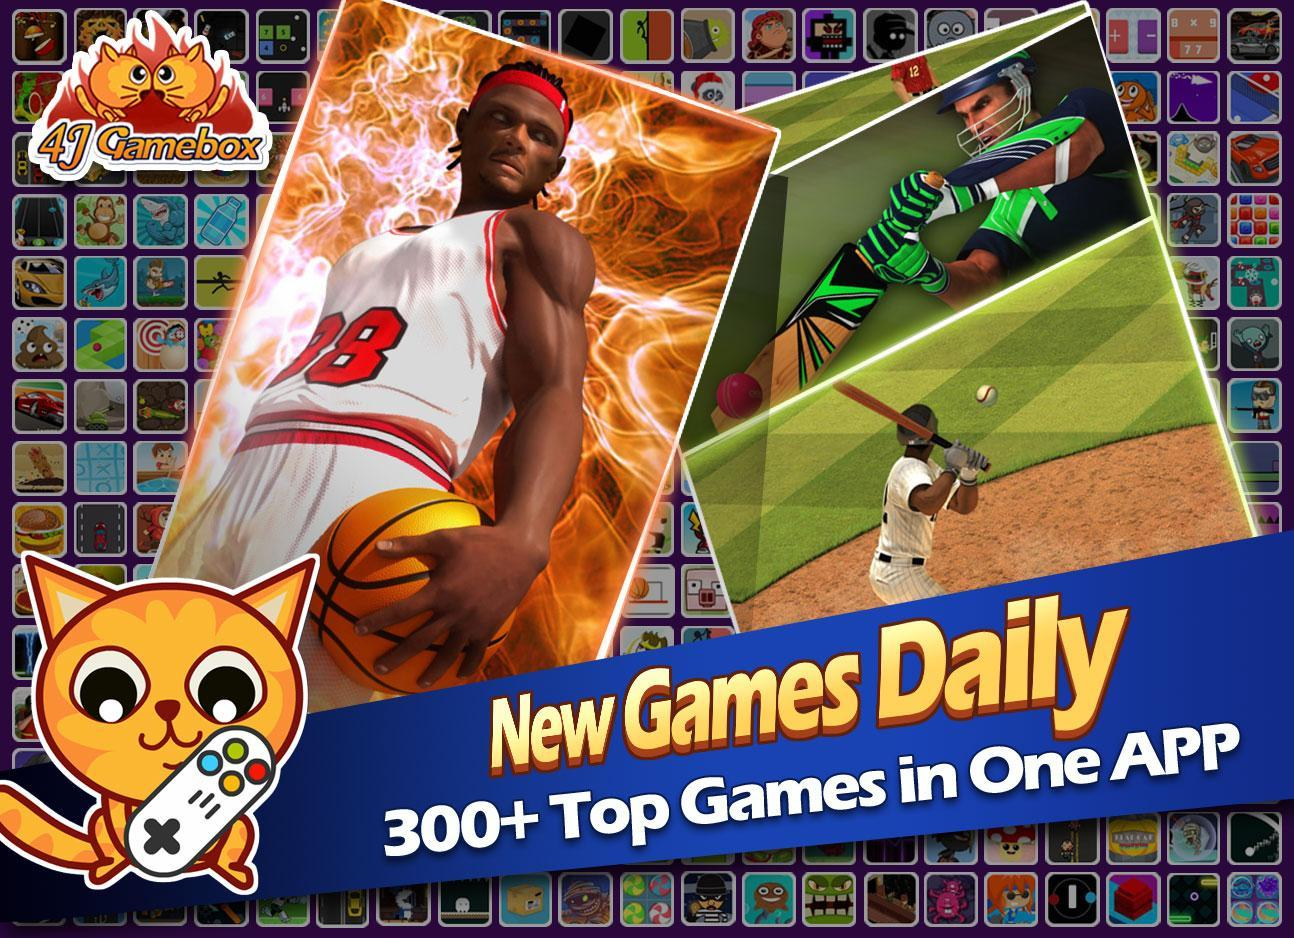 4j Gamebox 300 Games In 1 App For Android Apk Download